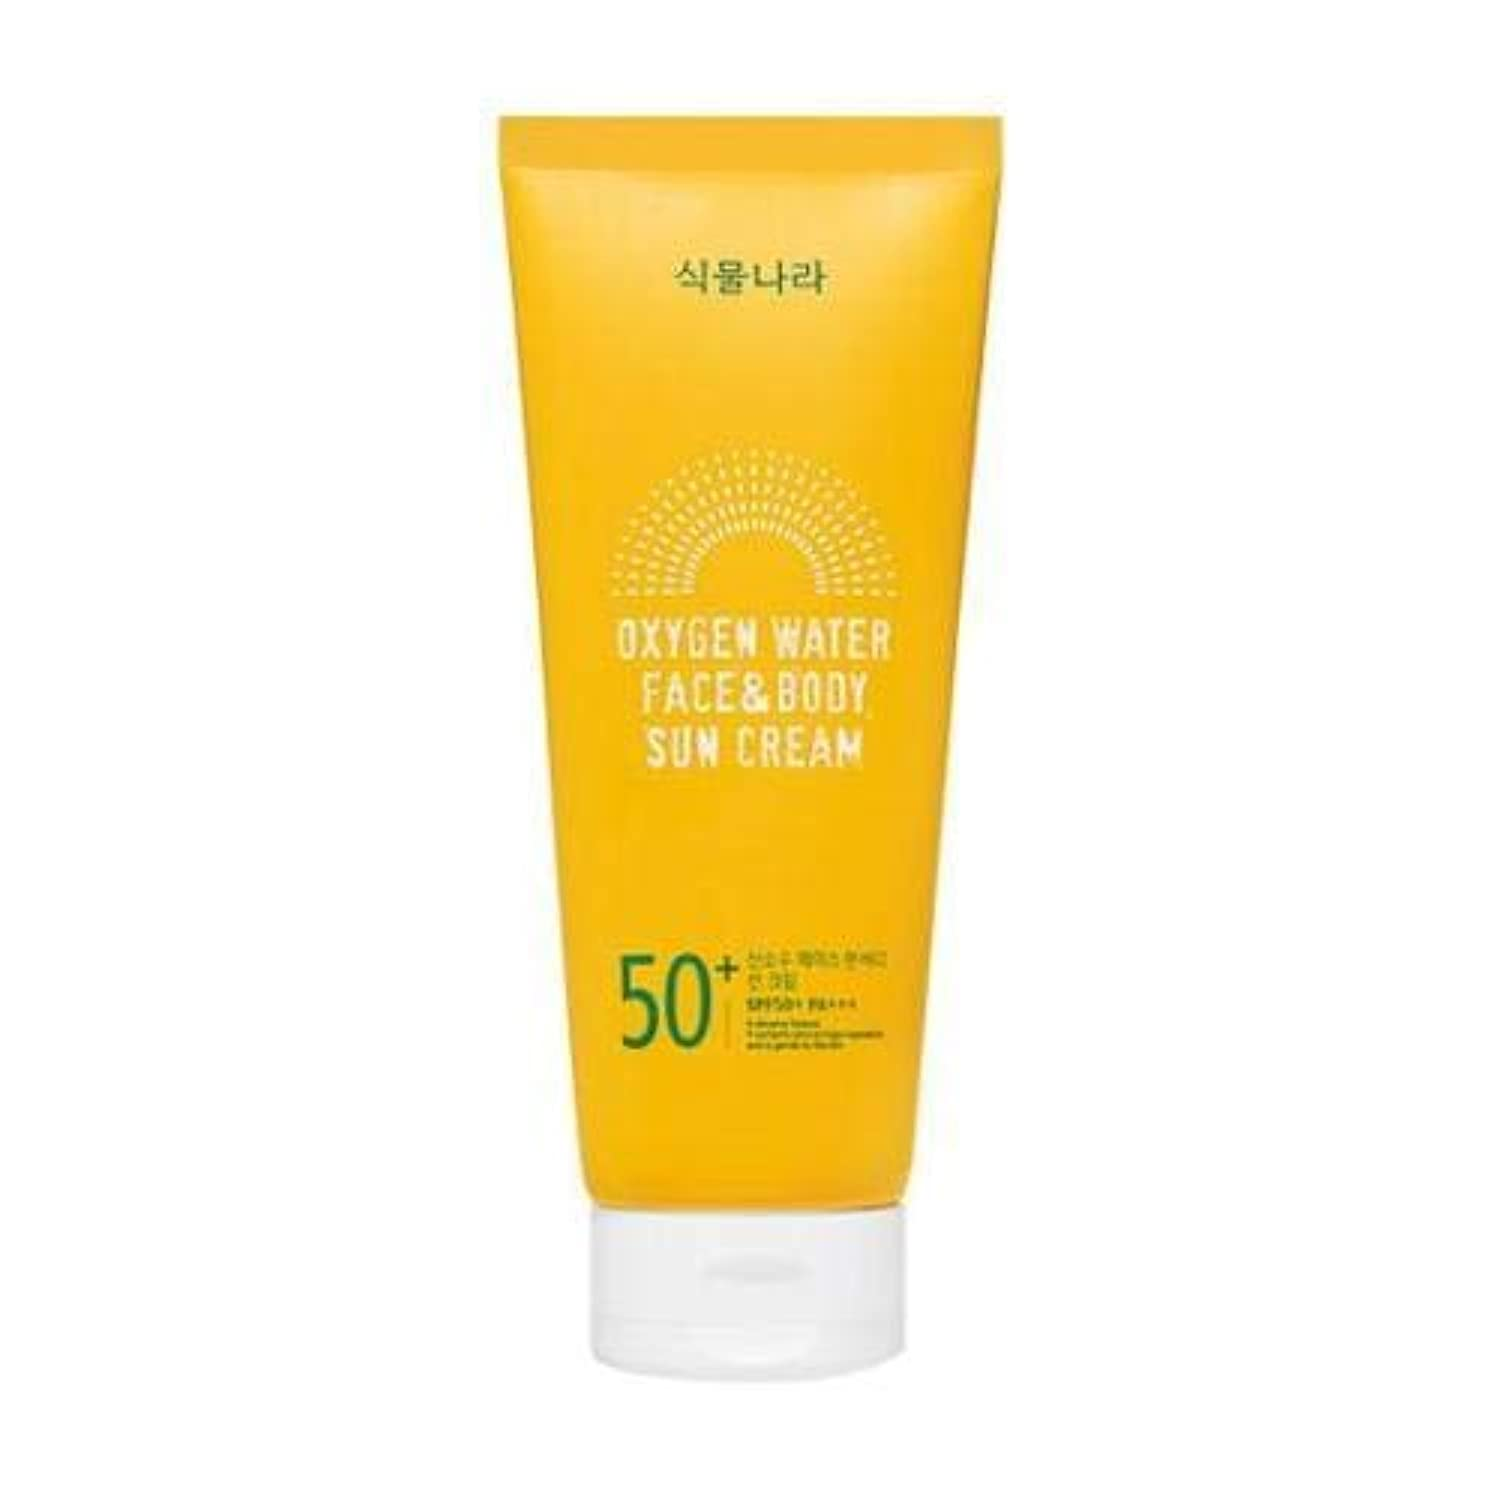 推定オン大使館shingmulnara Oxygen Water Face & Body sun cream サンクリーム (200ml) SPF50+ PA+++